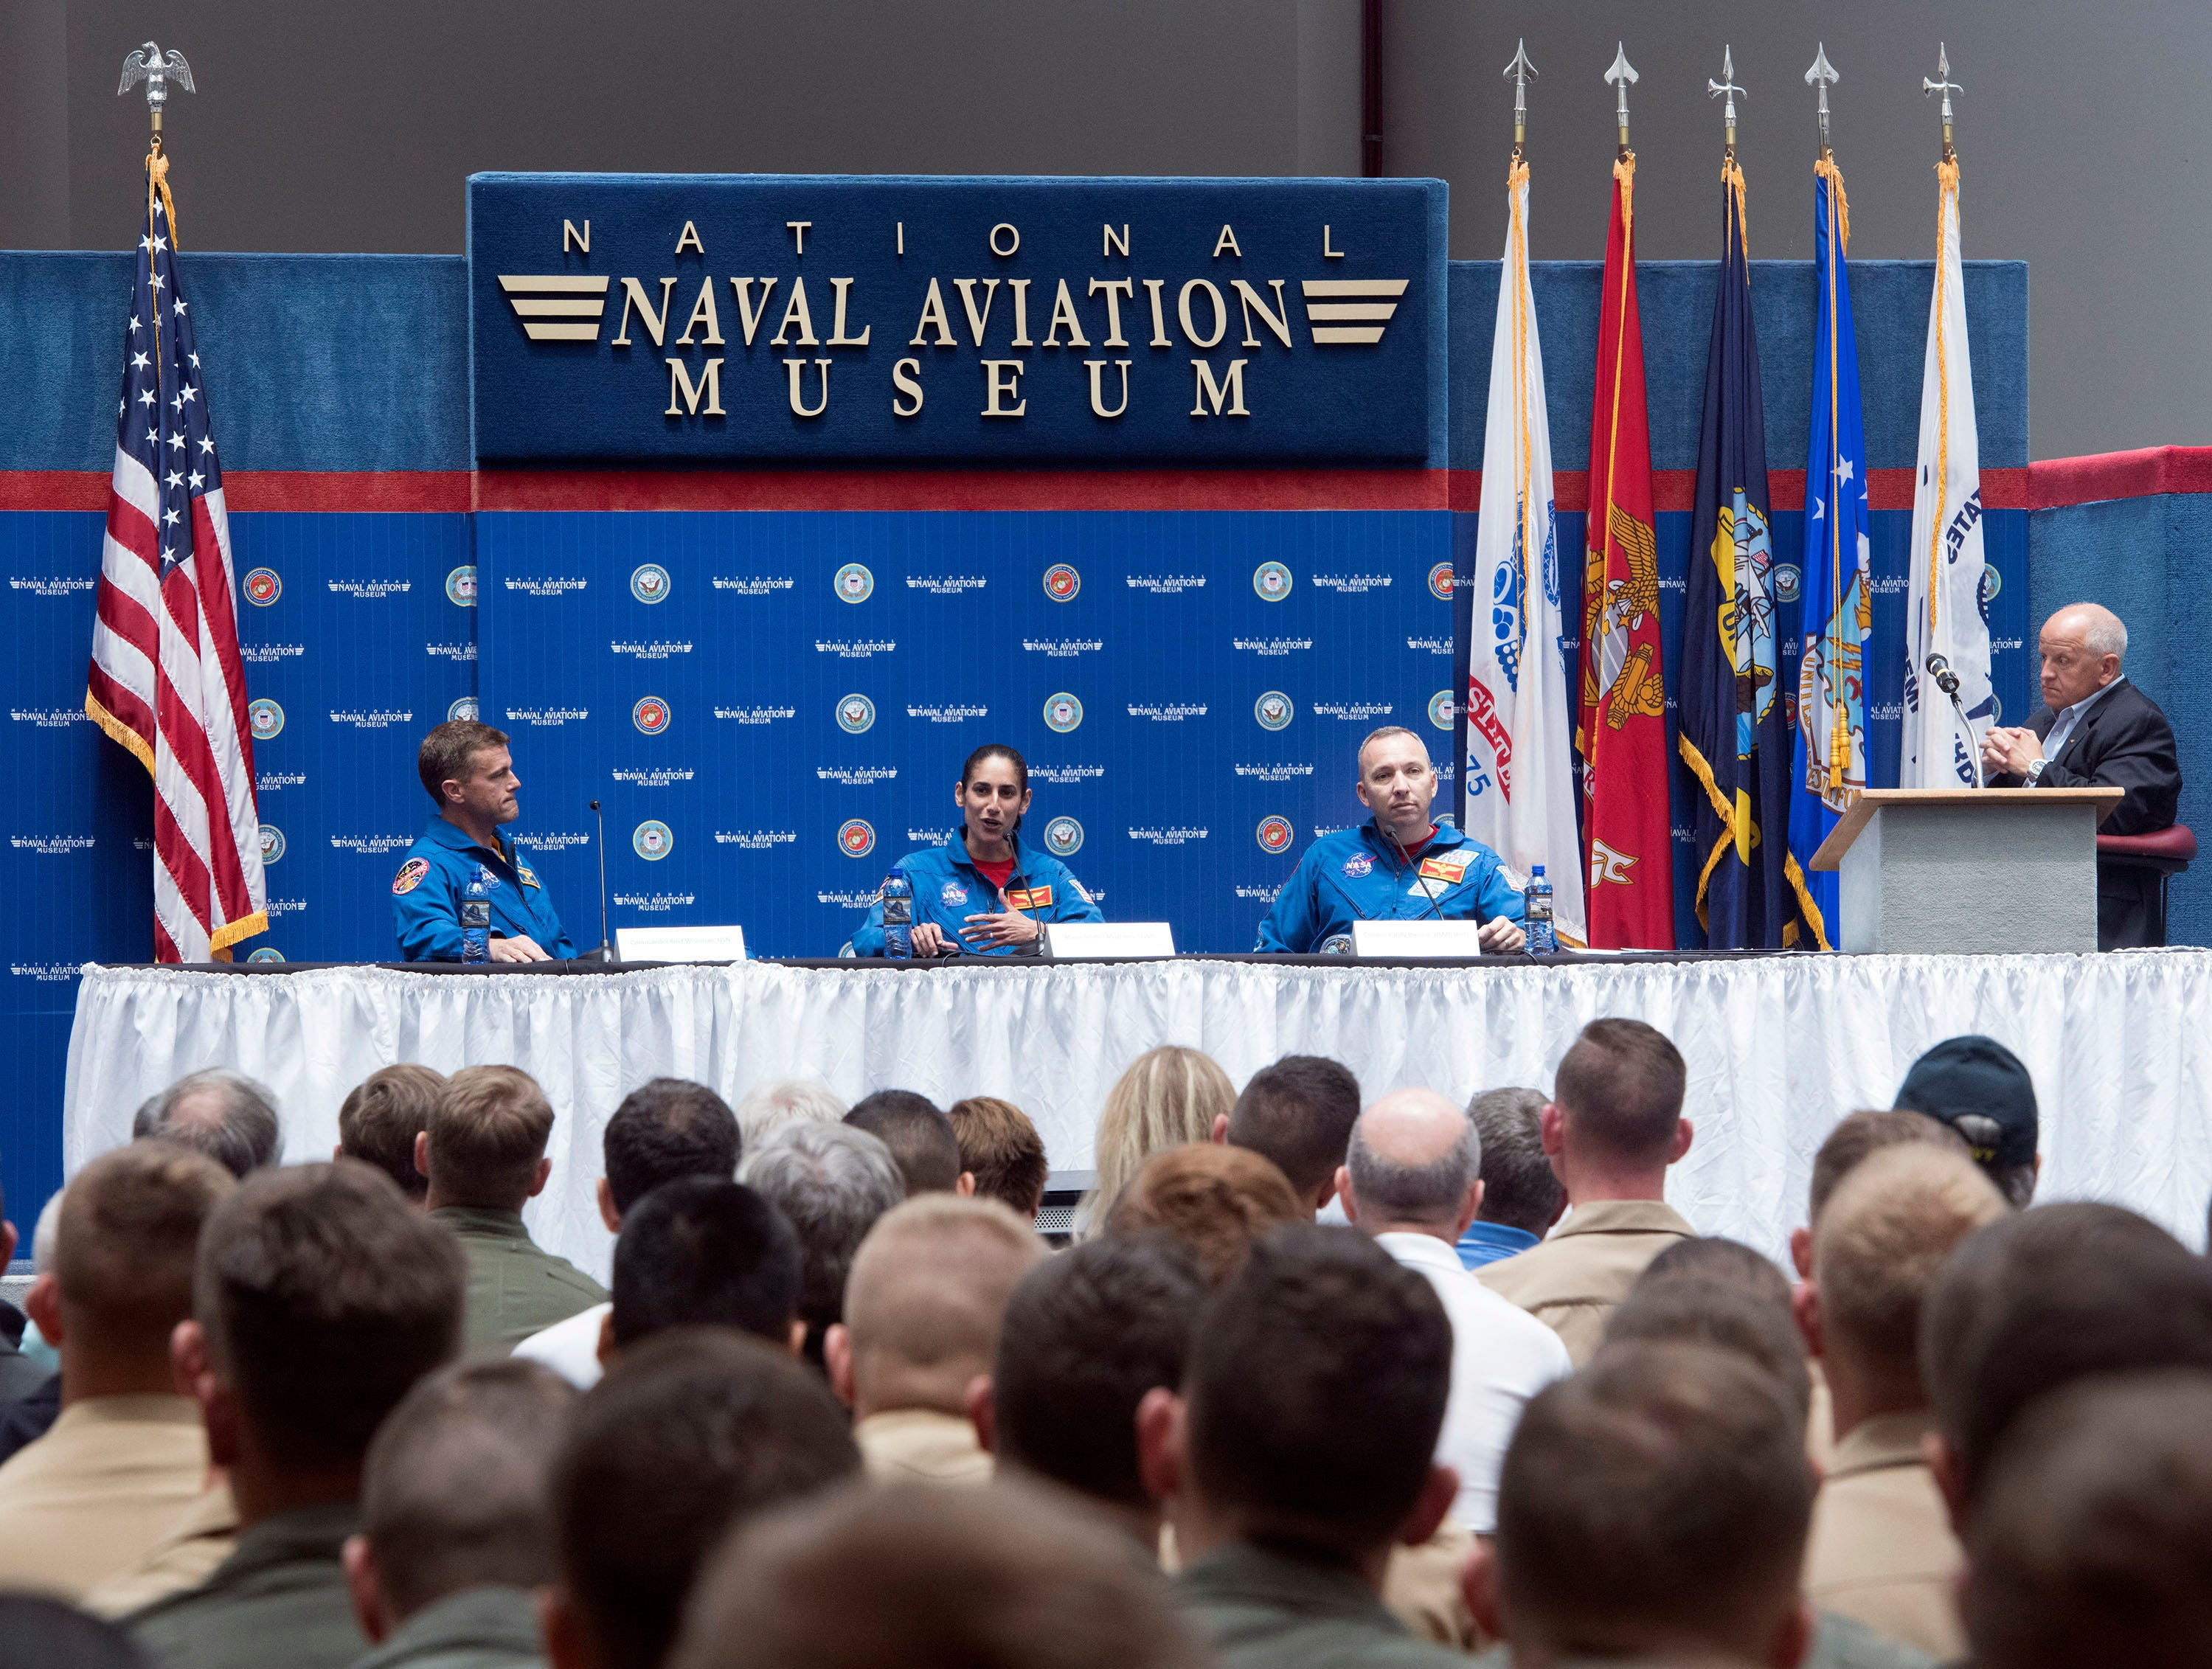 Maj. Jasmin Moghbeli describes her training as an astronaut during a panel discussion while fellow astronauts, Cmdr. Reid Wiseman and Col. Randy Bresnik look on during the Naval Aviation Symposium on Thursday, May 9, 2019.